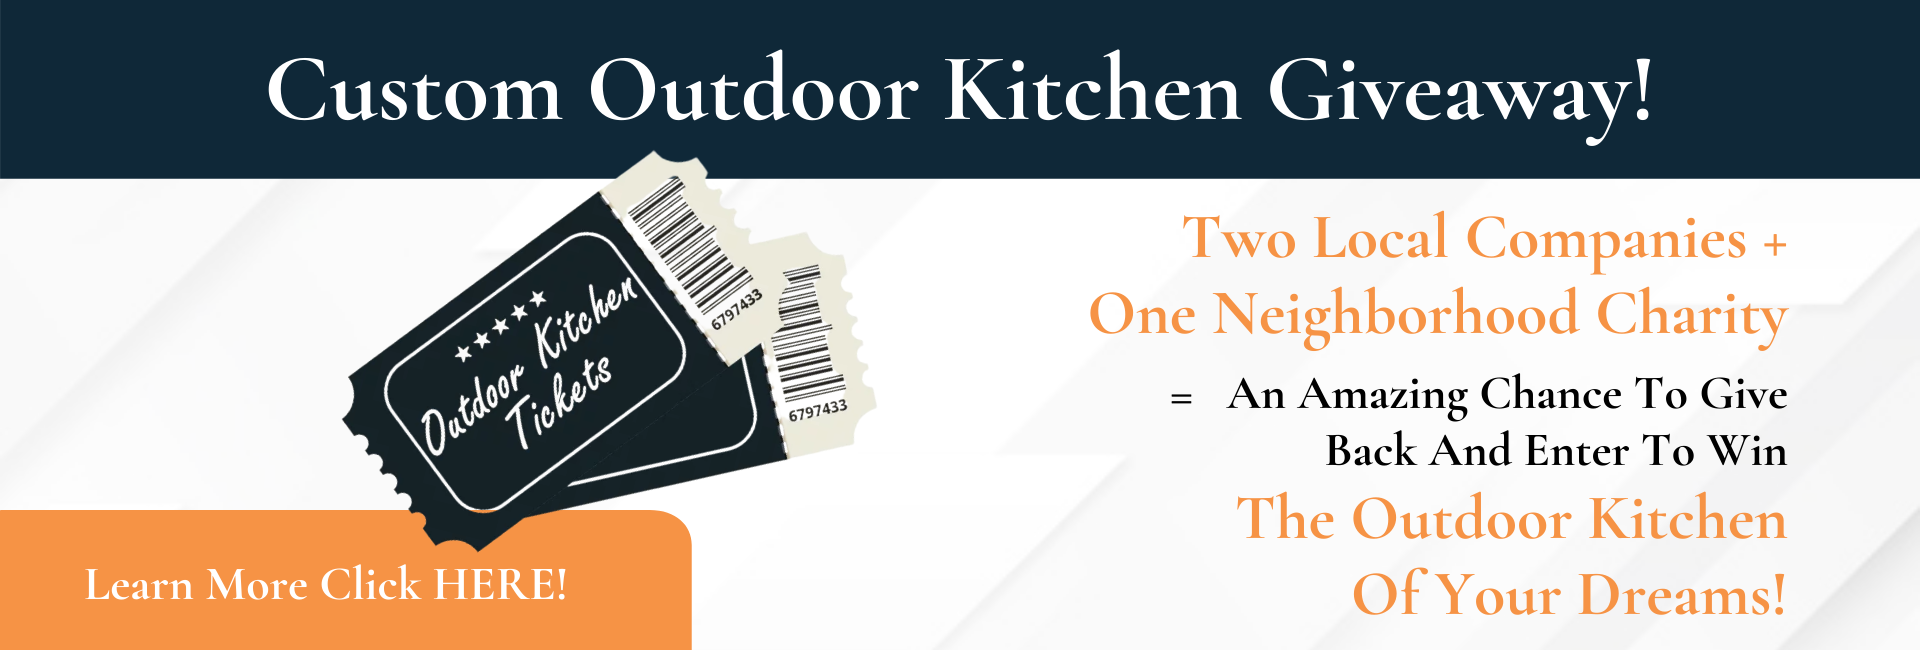 Custom Outdoor Kitchen Giveaway!